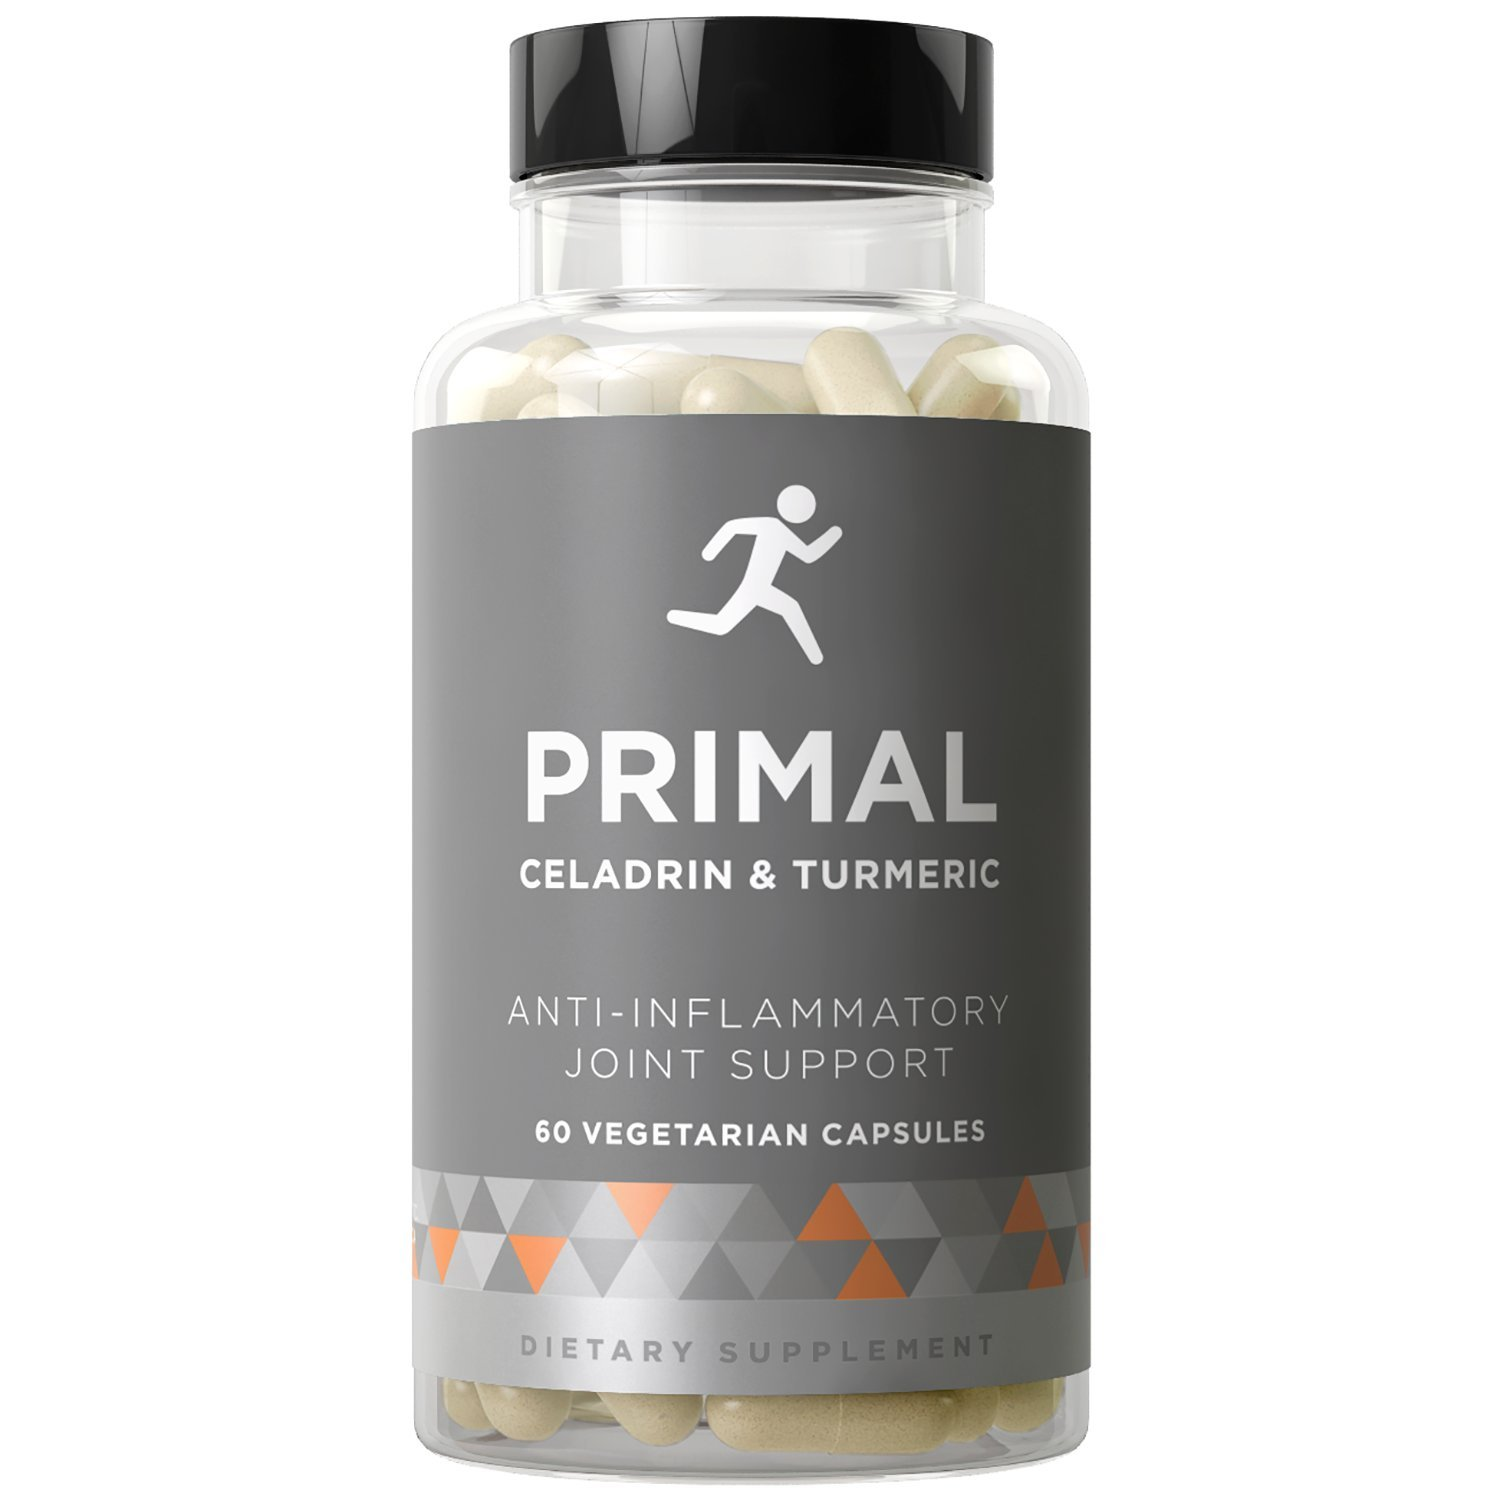 PRIMAL Joint Support & Anti-Inflammatory - Flare-Ups, Swelling, Stiffness, and Whole-Body Inflammation - Celadrin, Curcumin, Boswellia - 60 Vegetarian Soft Capsules